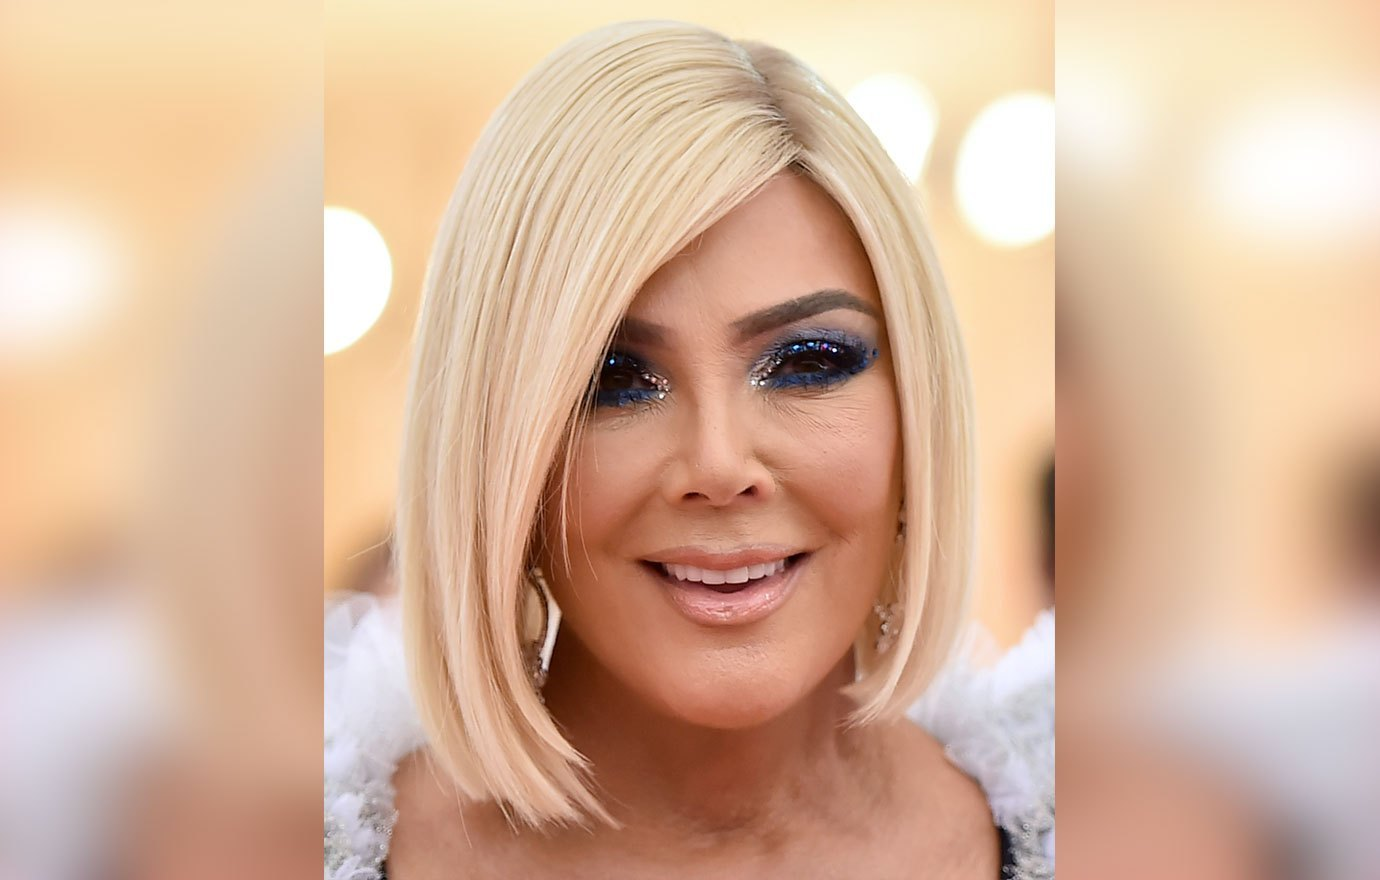 Kris Jenner before and after plastic surgery 2019 - lailasnews